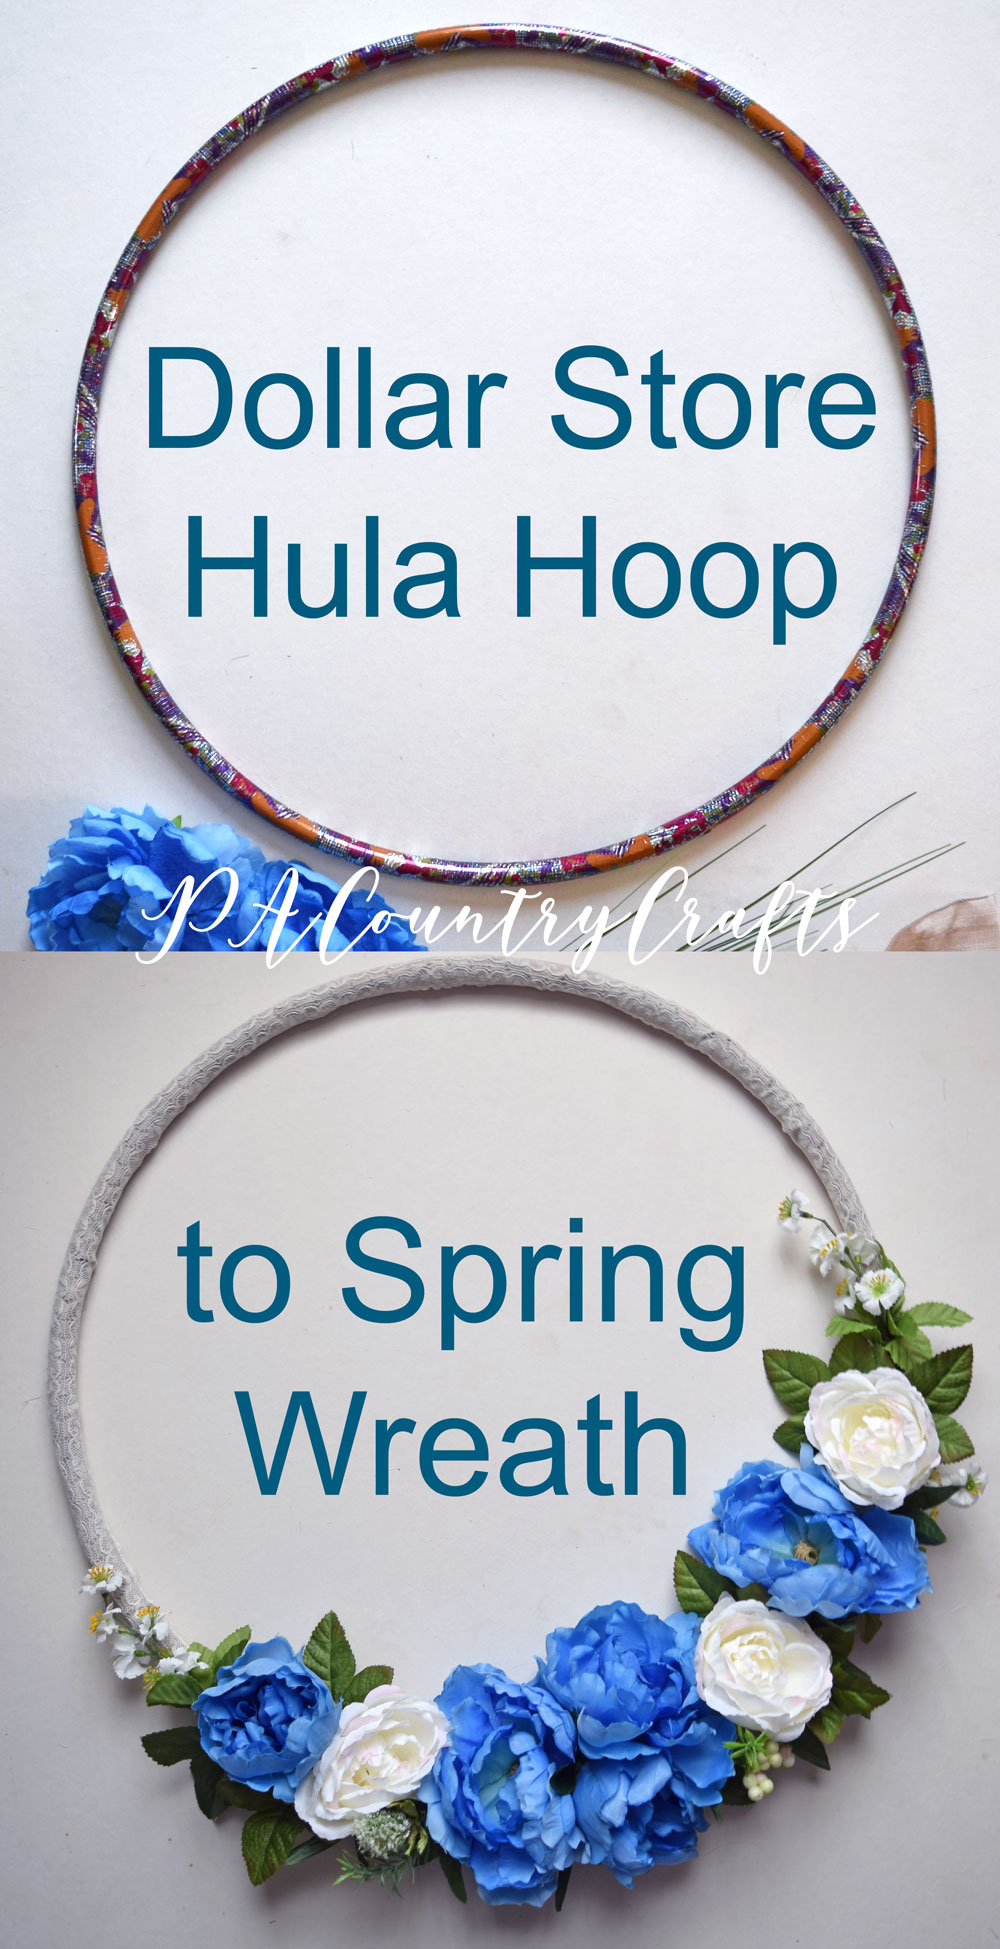 Dollar Store Hula Hoop to Spring Wreath